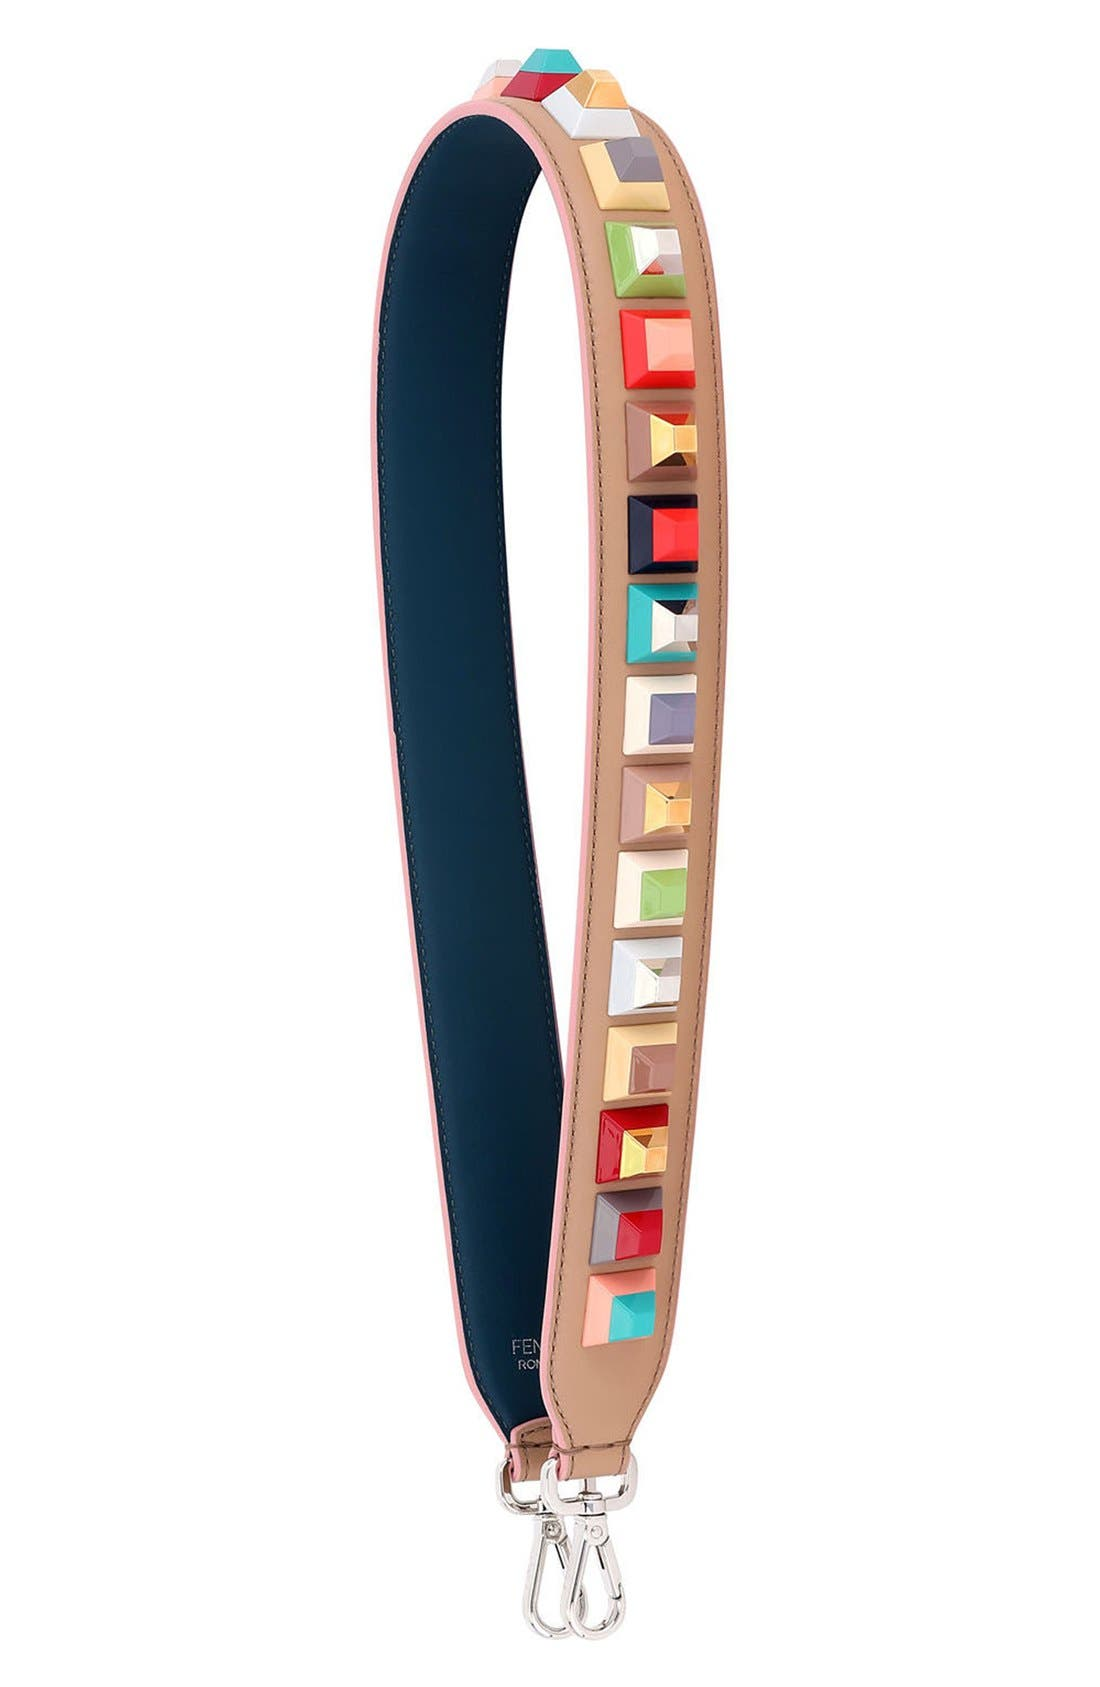 Main Image - Fendi Strap You Multi Rainbow Stud Leather Guitar Bag Strap